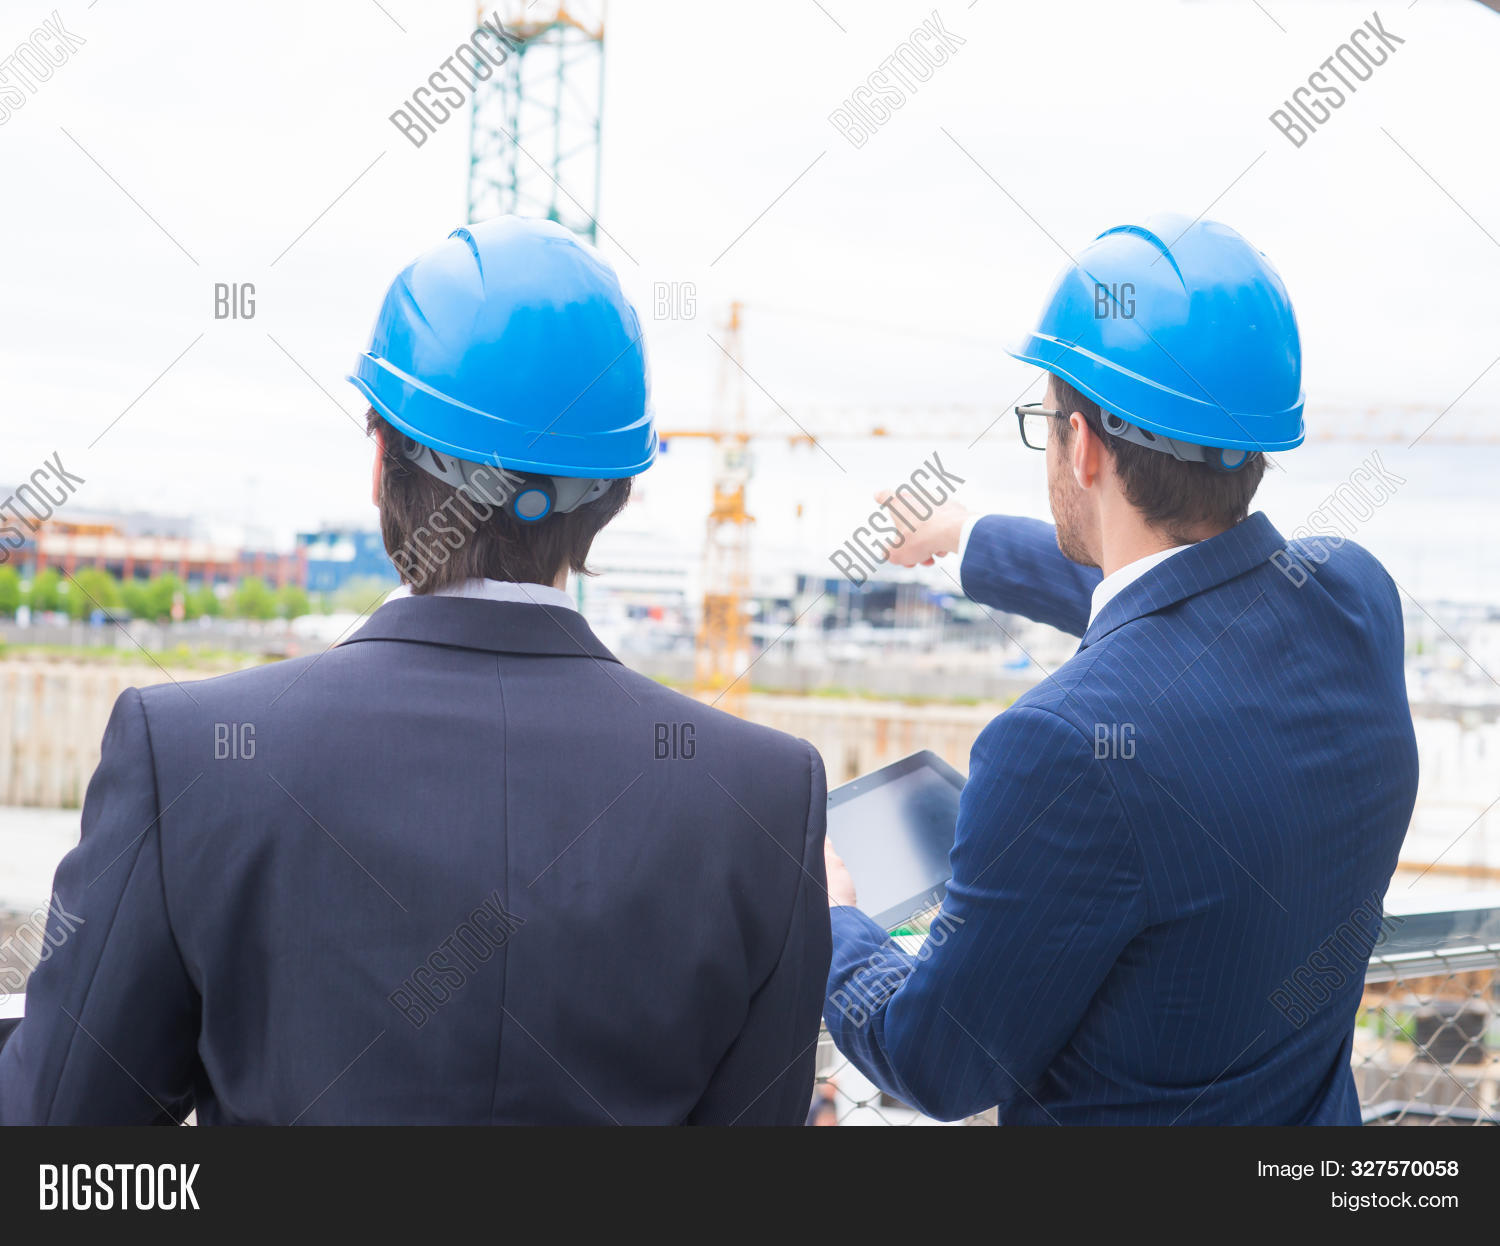 Business,architect,balcony,bank,banking,building,businessman,businessperson,career,city,collar,colleagues,communication,company,concept,confident,construction,conversation,corporation,coworkers,crane,deal,development,financial,formalwear,future,helmet,invest,job,mail,manager,market,men,modern,office,outdoor,outside,partners,people,person,perspectives,professional,retailing,standing,talking,white,worker,young